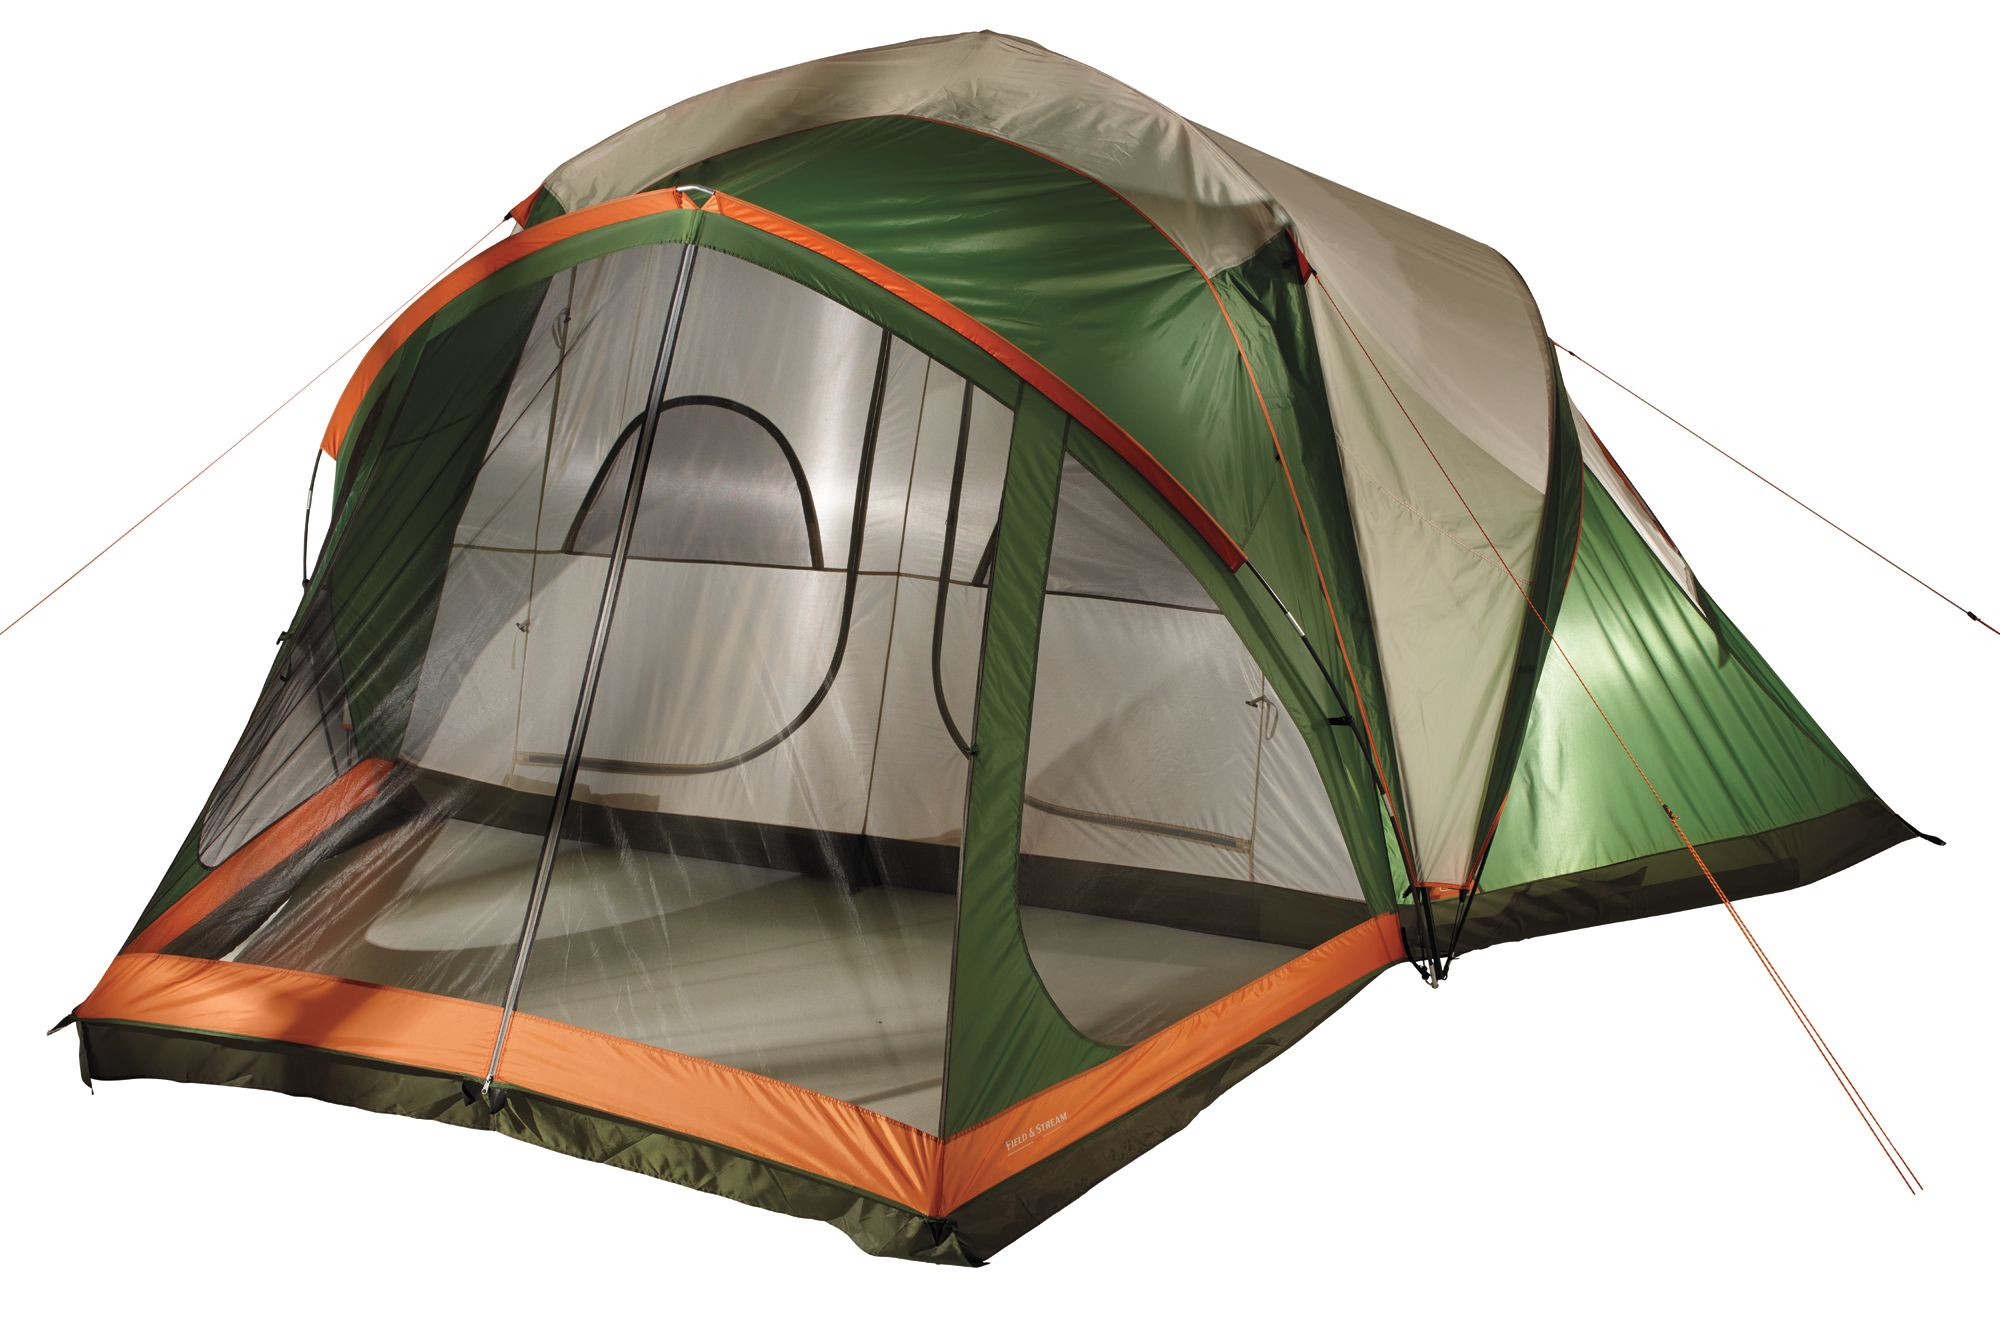 Product Image · Field u0026 Stream Forest Ridge 8 Person Cabin Tent  sc 1 st  DICKu0027S Sporting Goods & Tents for Sale | DICKu0027S Sporting Goods